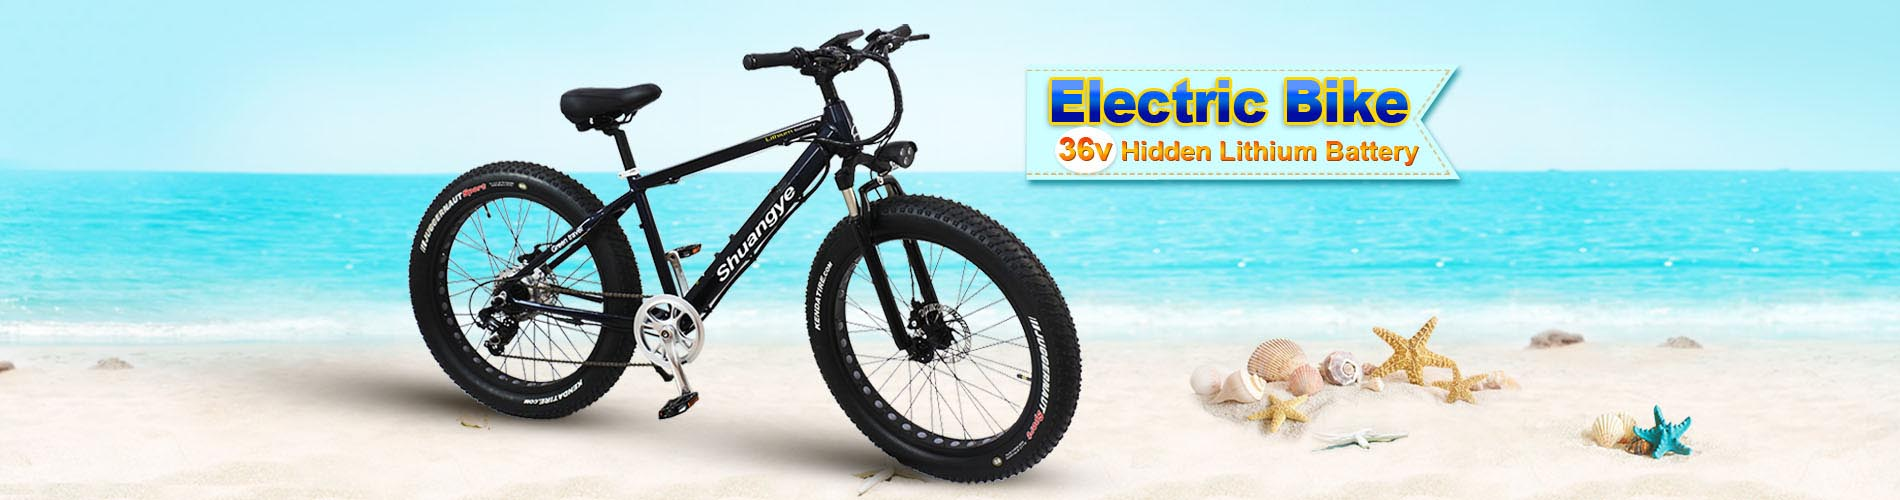 shuangye electric bike performance